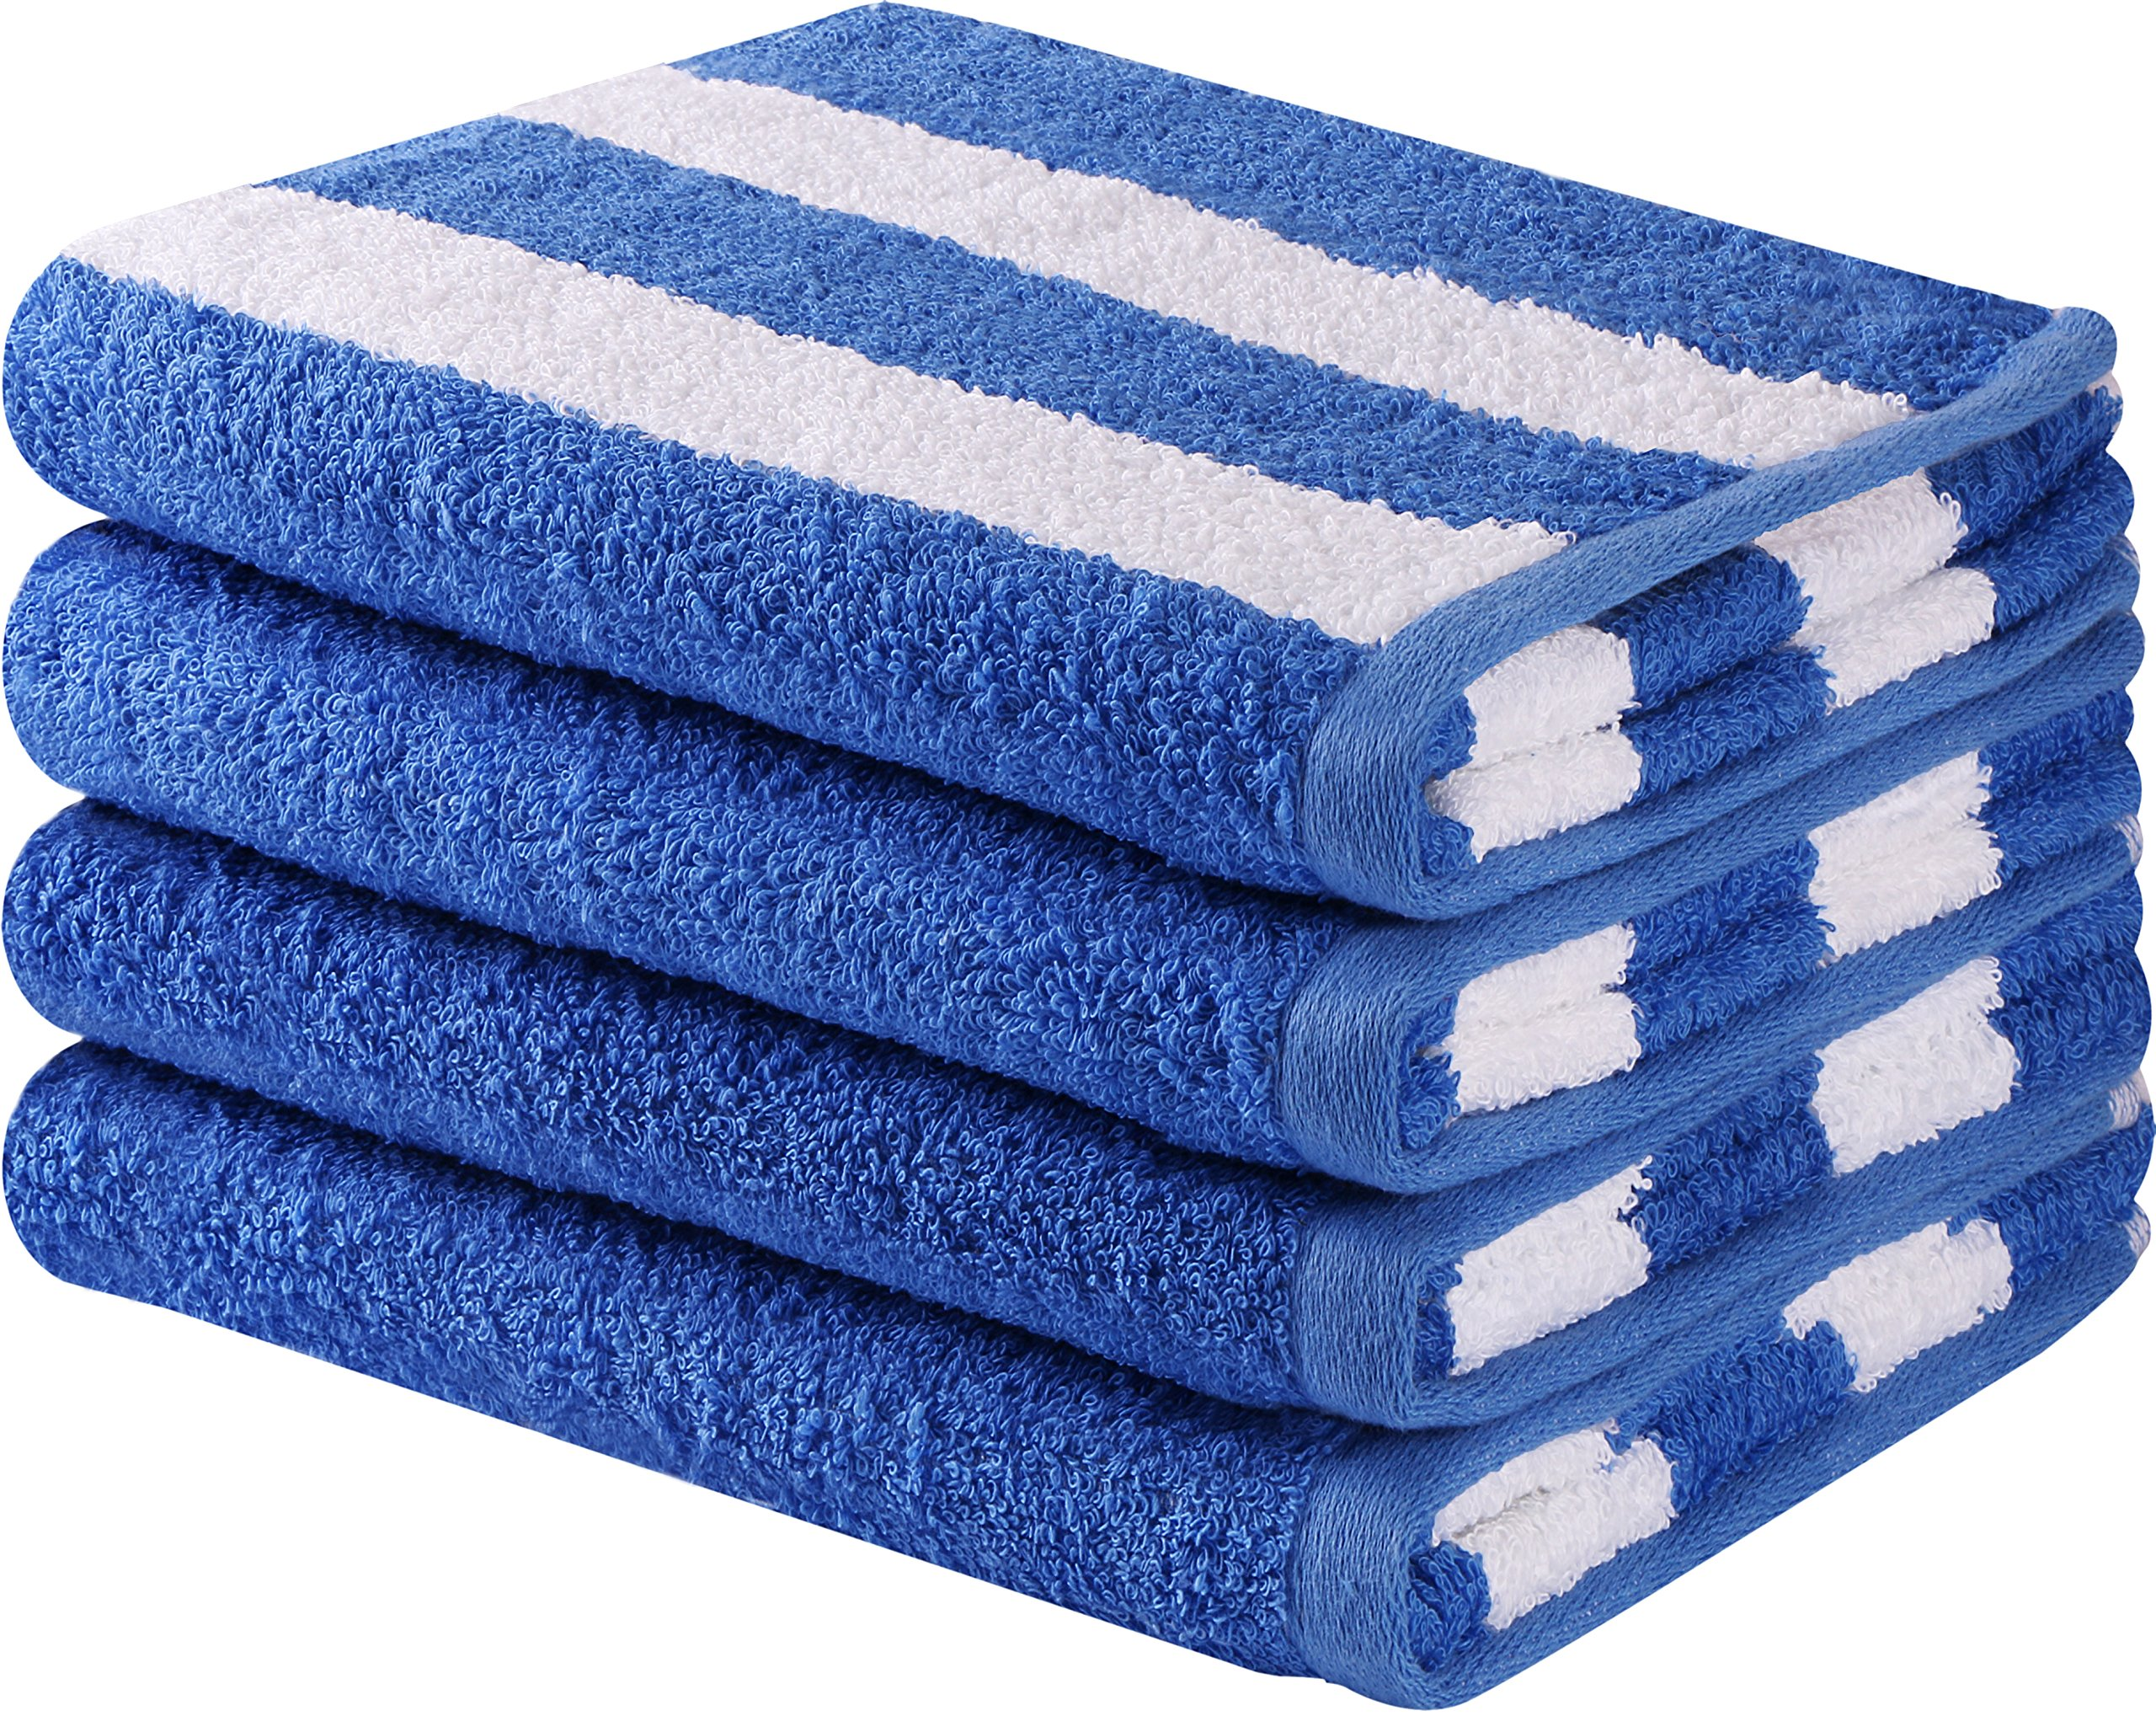 Utopia Towels Cotton Large Hand Towel Set (4 Pack, Stripe Blue - 16 x 28 Inches) - Multipurpose Bathroom Towels for Hand, Face, Gym and Spa